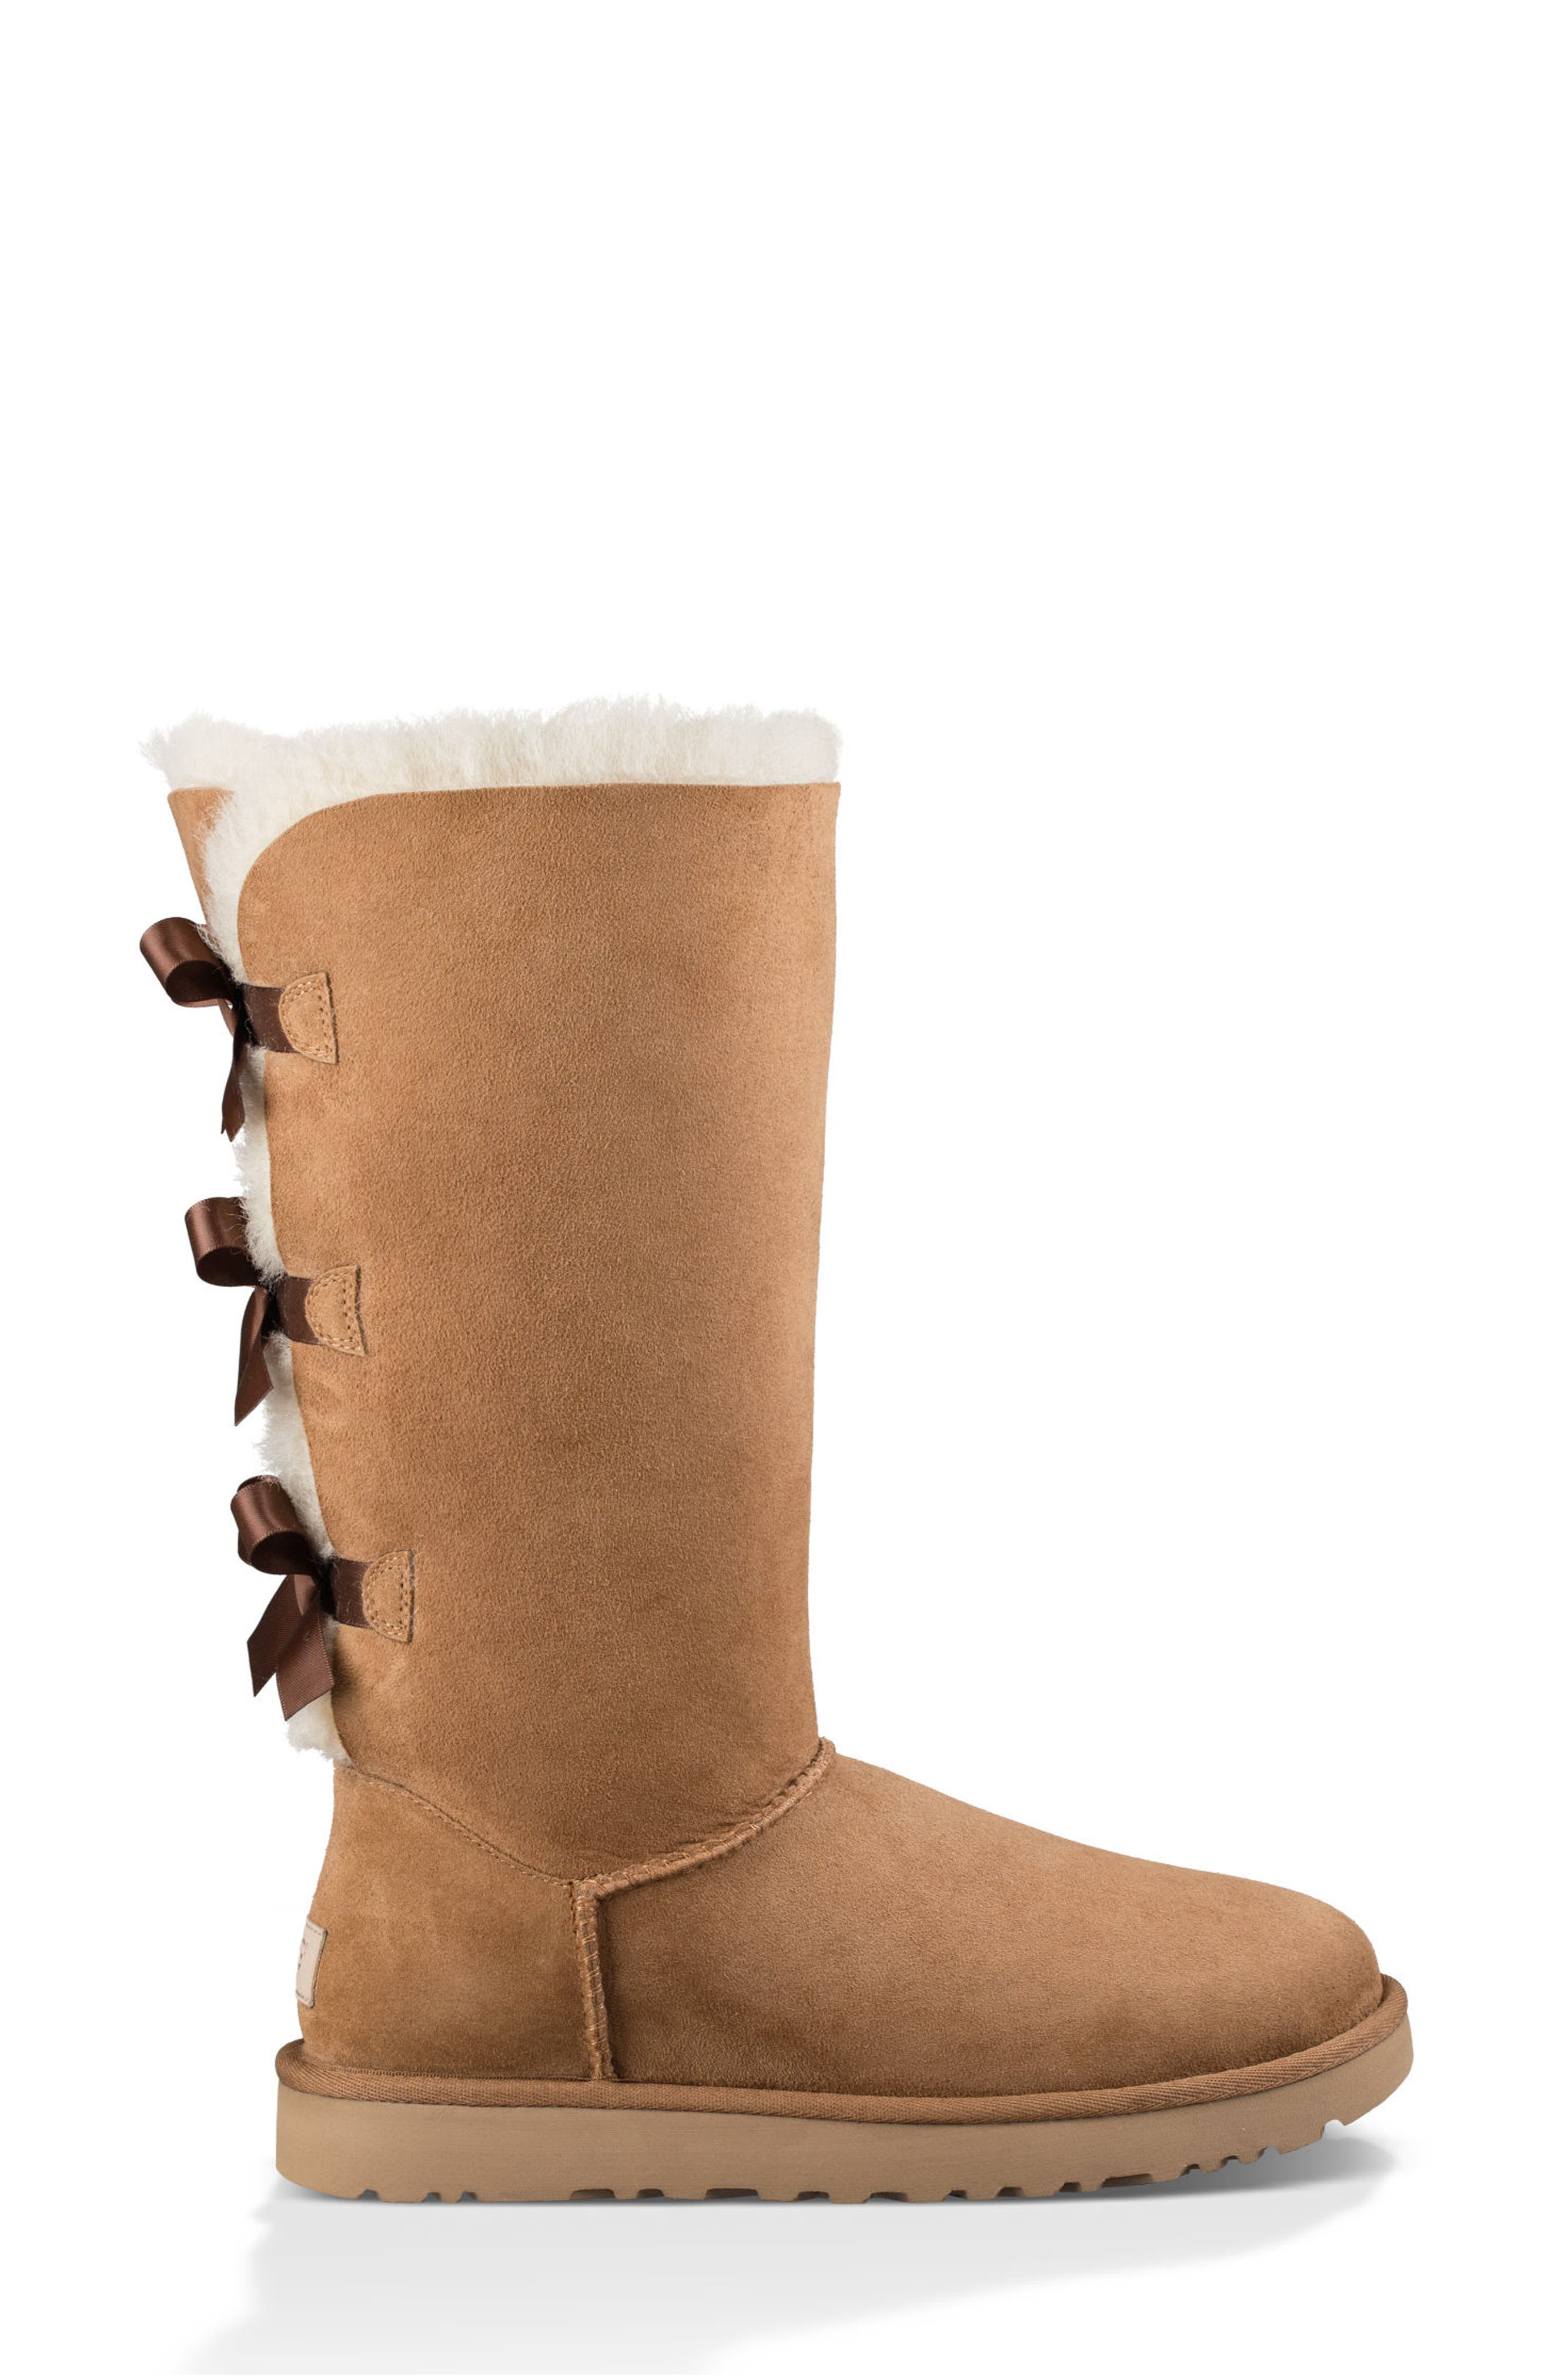 Bailey Bow Tall II Boot,                             Alternate thumbnail 6, color,                             Chestnut Suede